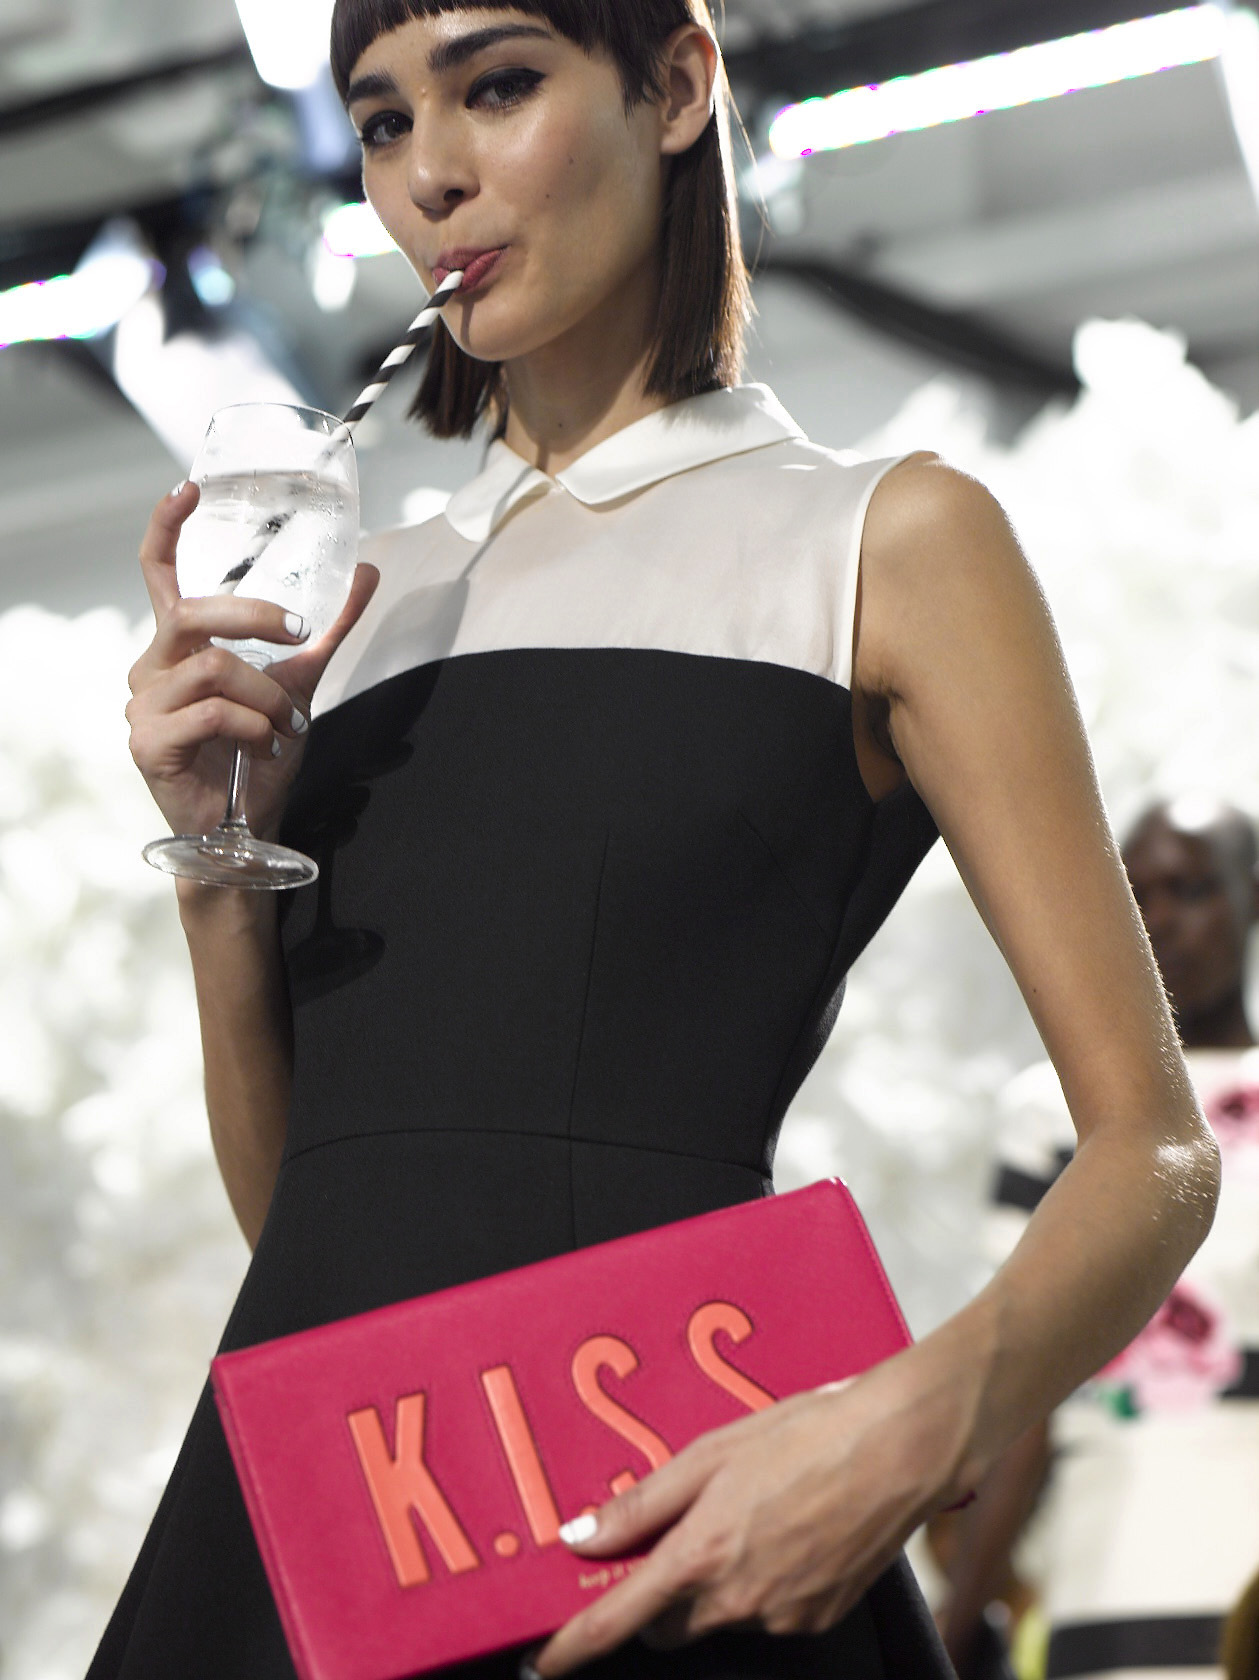 KATE SPADE Spring/Summer 2015 New York Fashion Week